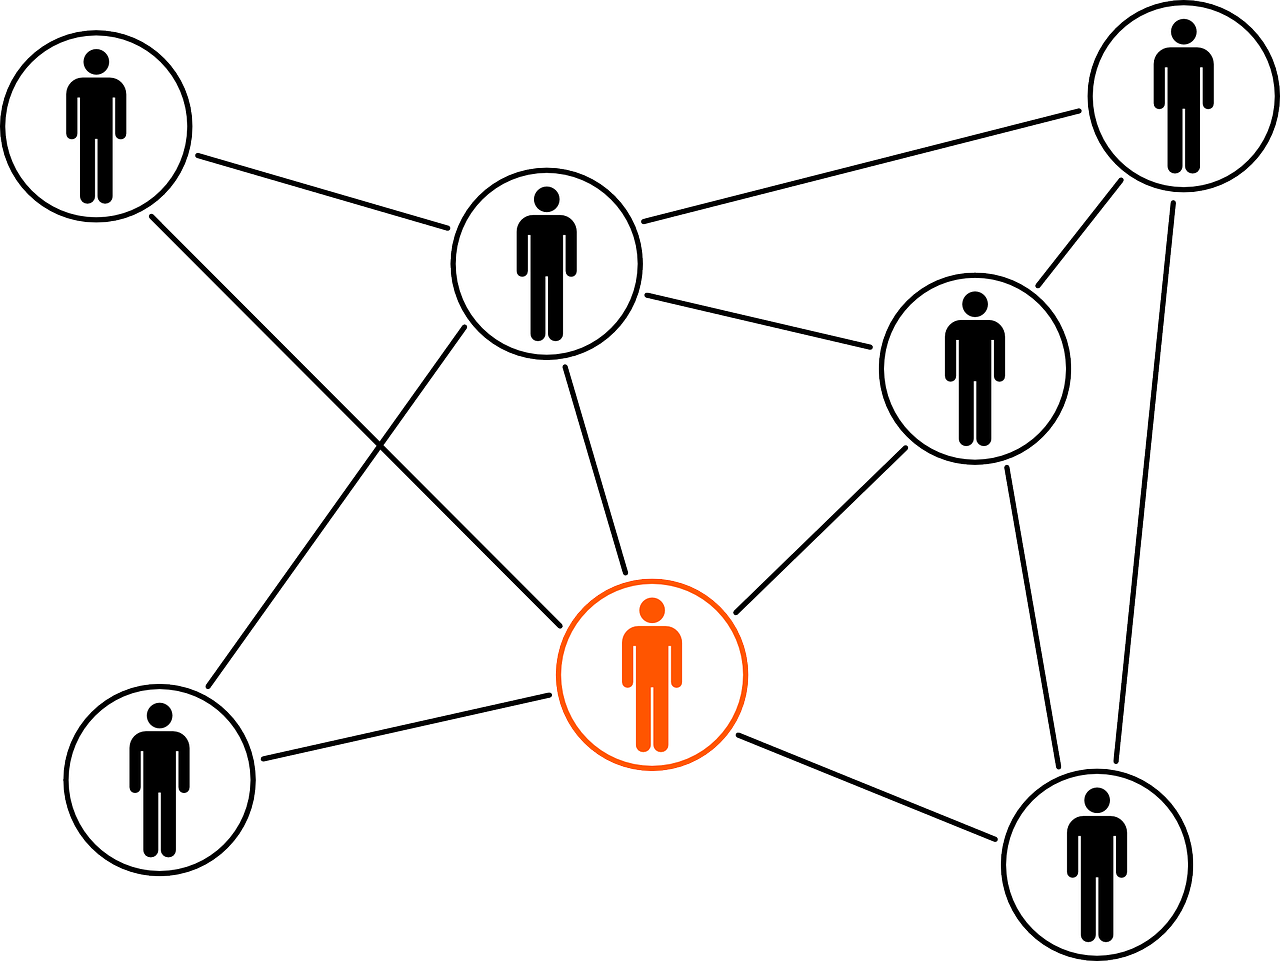 The outline of seven stick man figures are visible with circles around them. Each is connected to another by a straight black line. All the stick men are drawn in black except one which is orange.